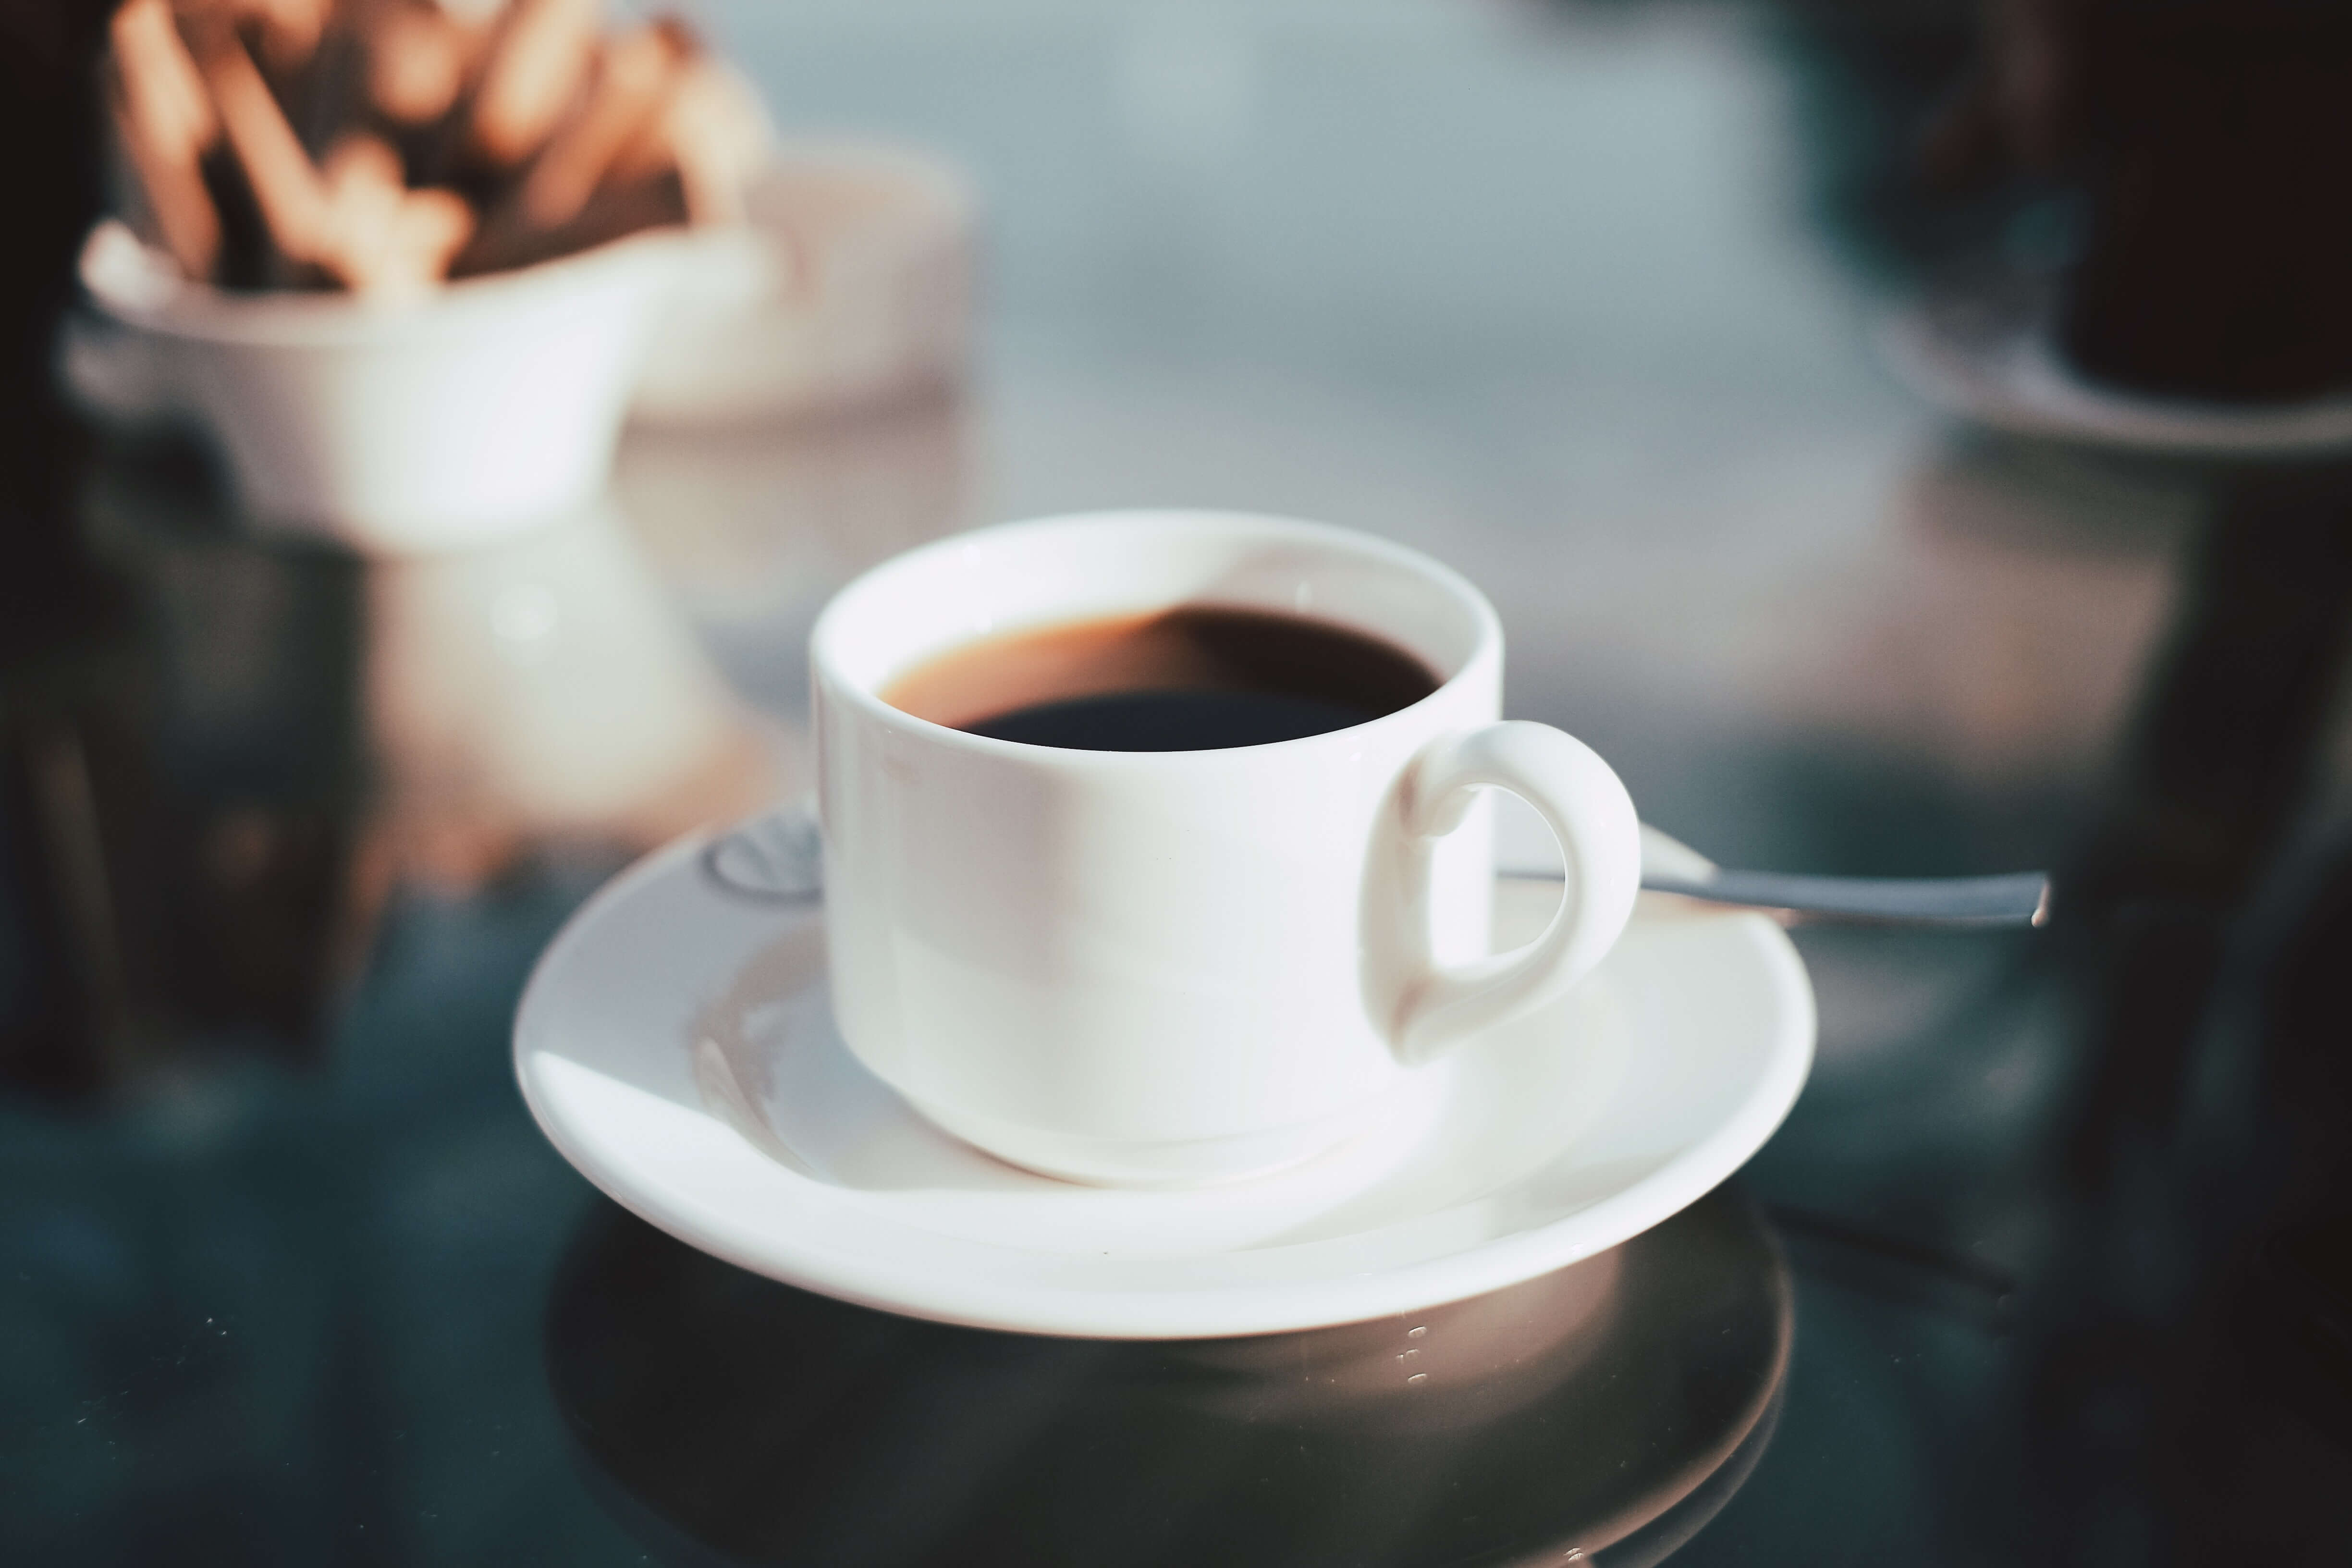 A hot cup of coffee